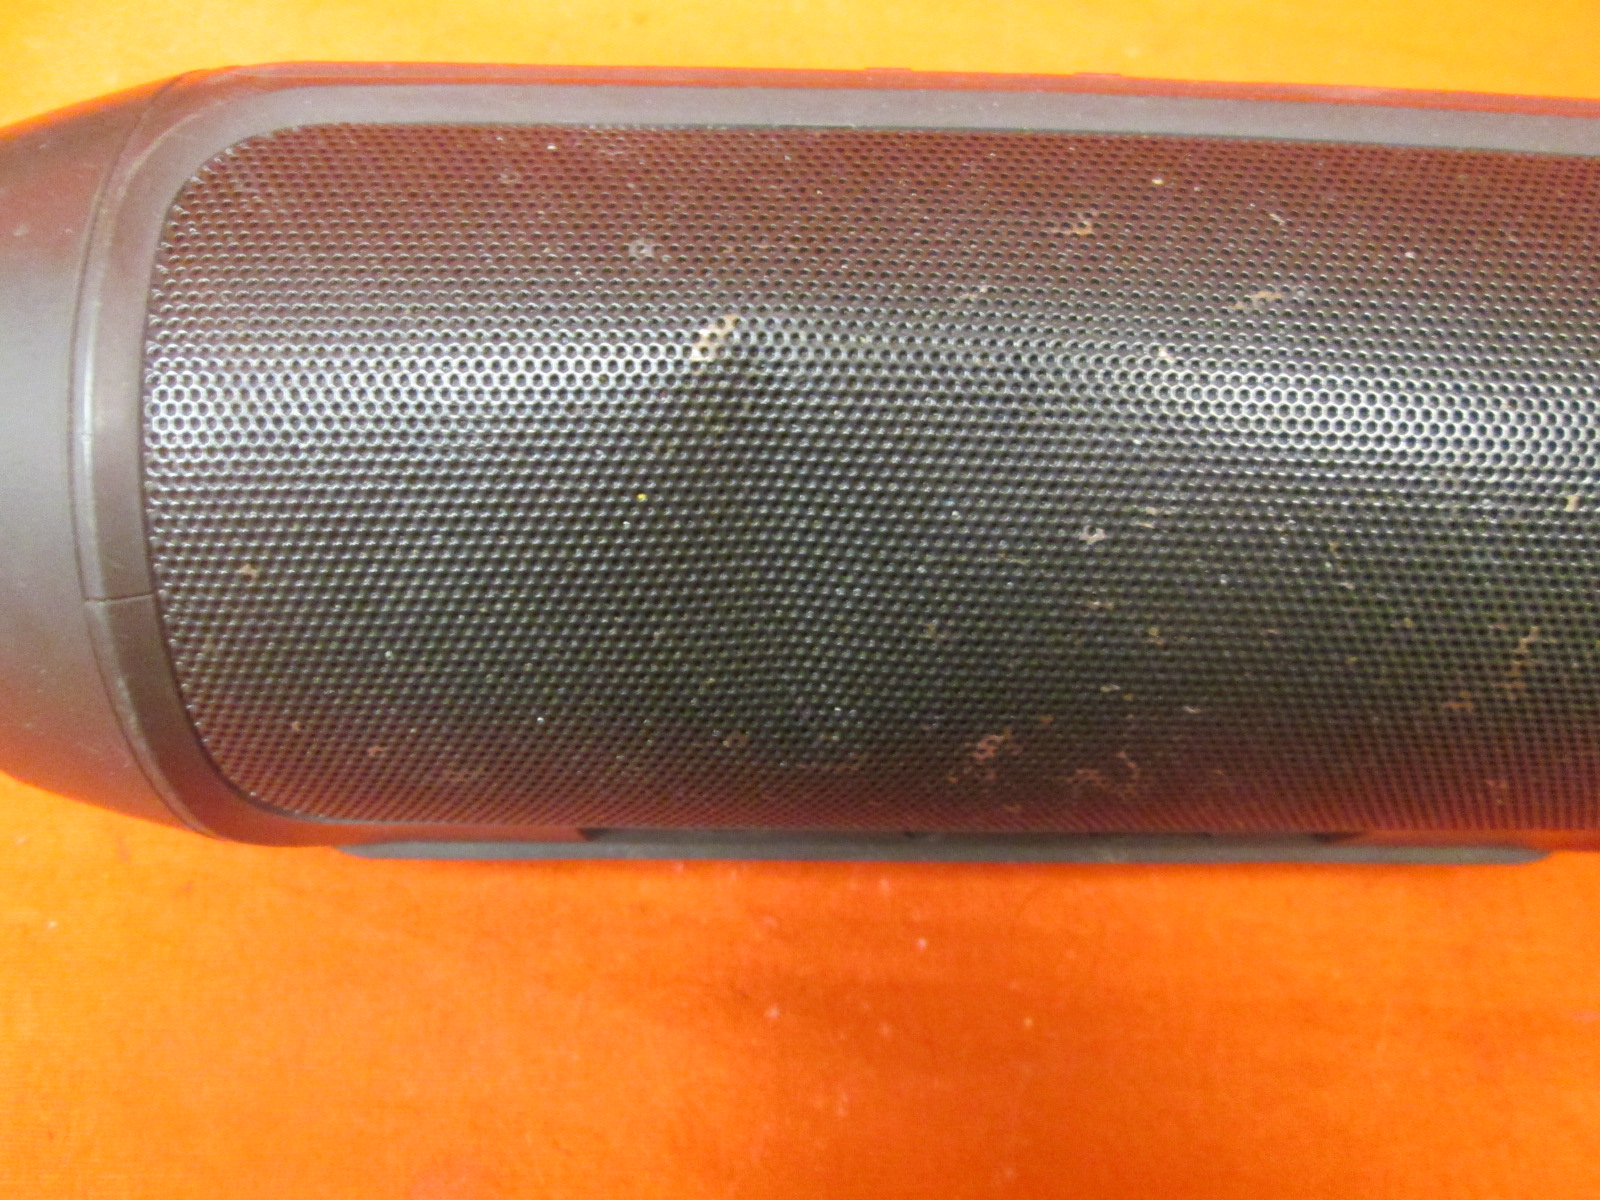 Image 1 of Broken JBL Charge 2+ Splashproof Portable Bluetooth Speaker Black